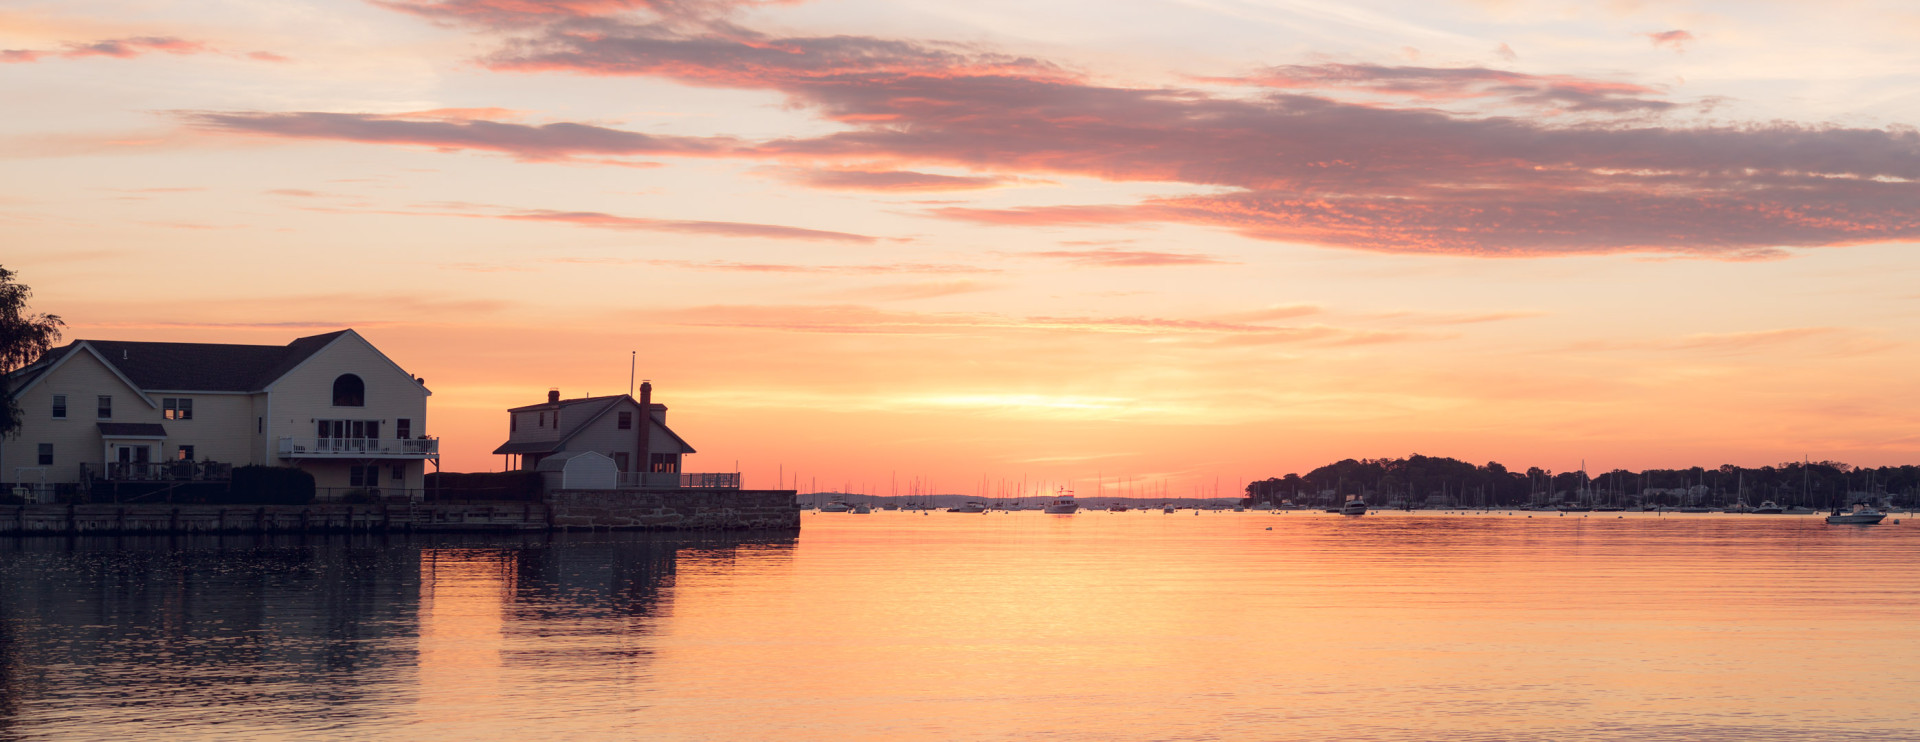 Good Morning Harbor, Salem MA | Christina Minniti Photography